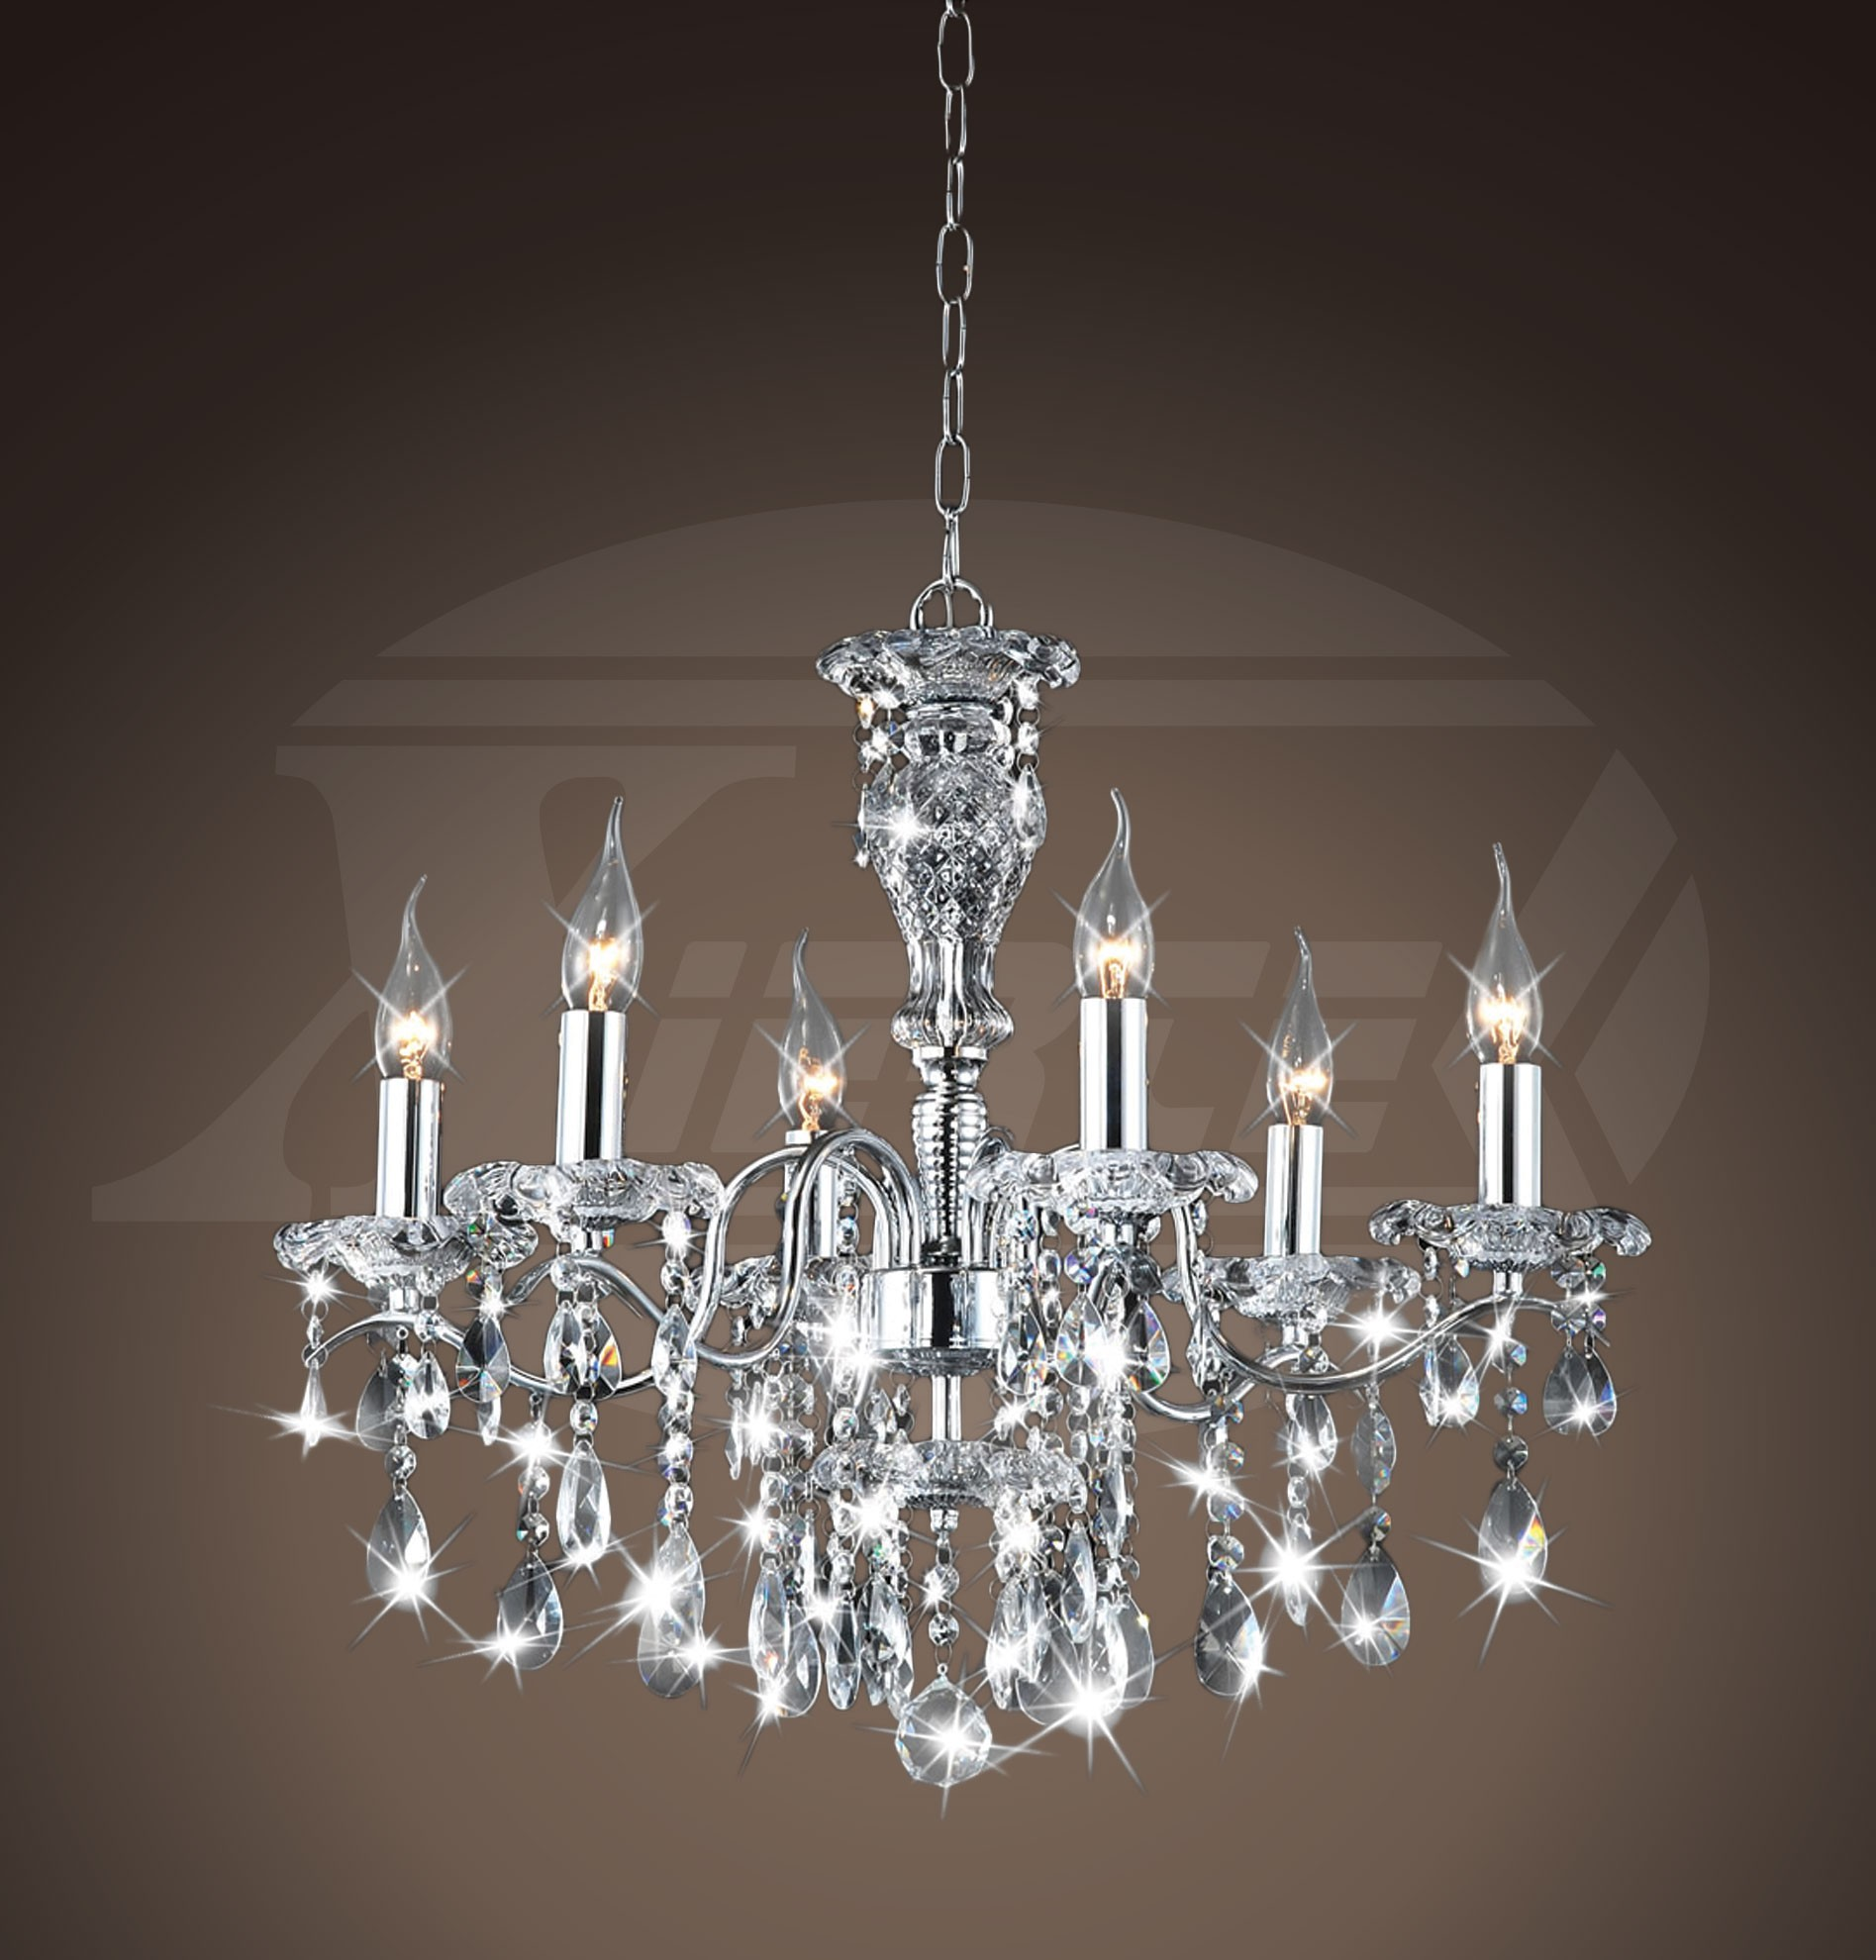 Maddison shine 6 light gleaming chrome crystal chandelier for Crystal fall